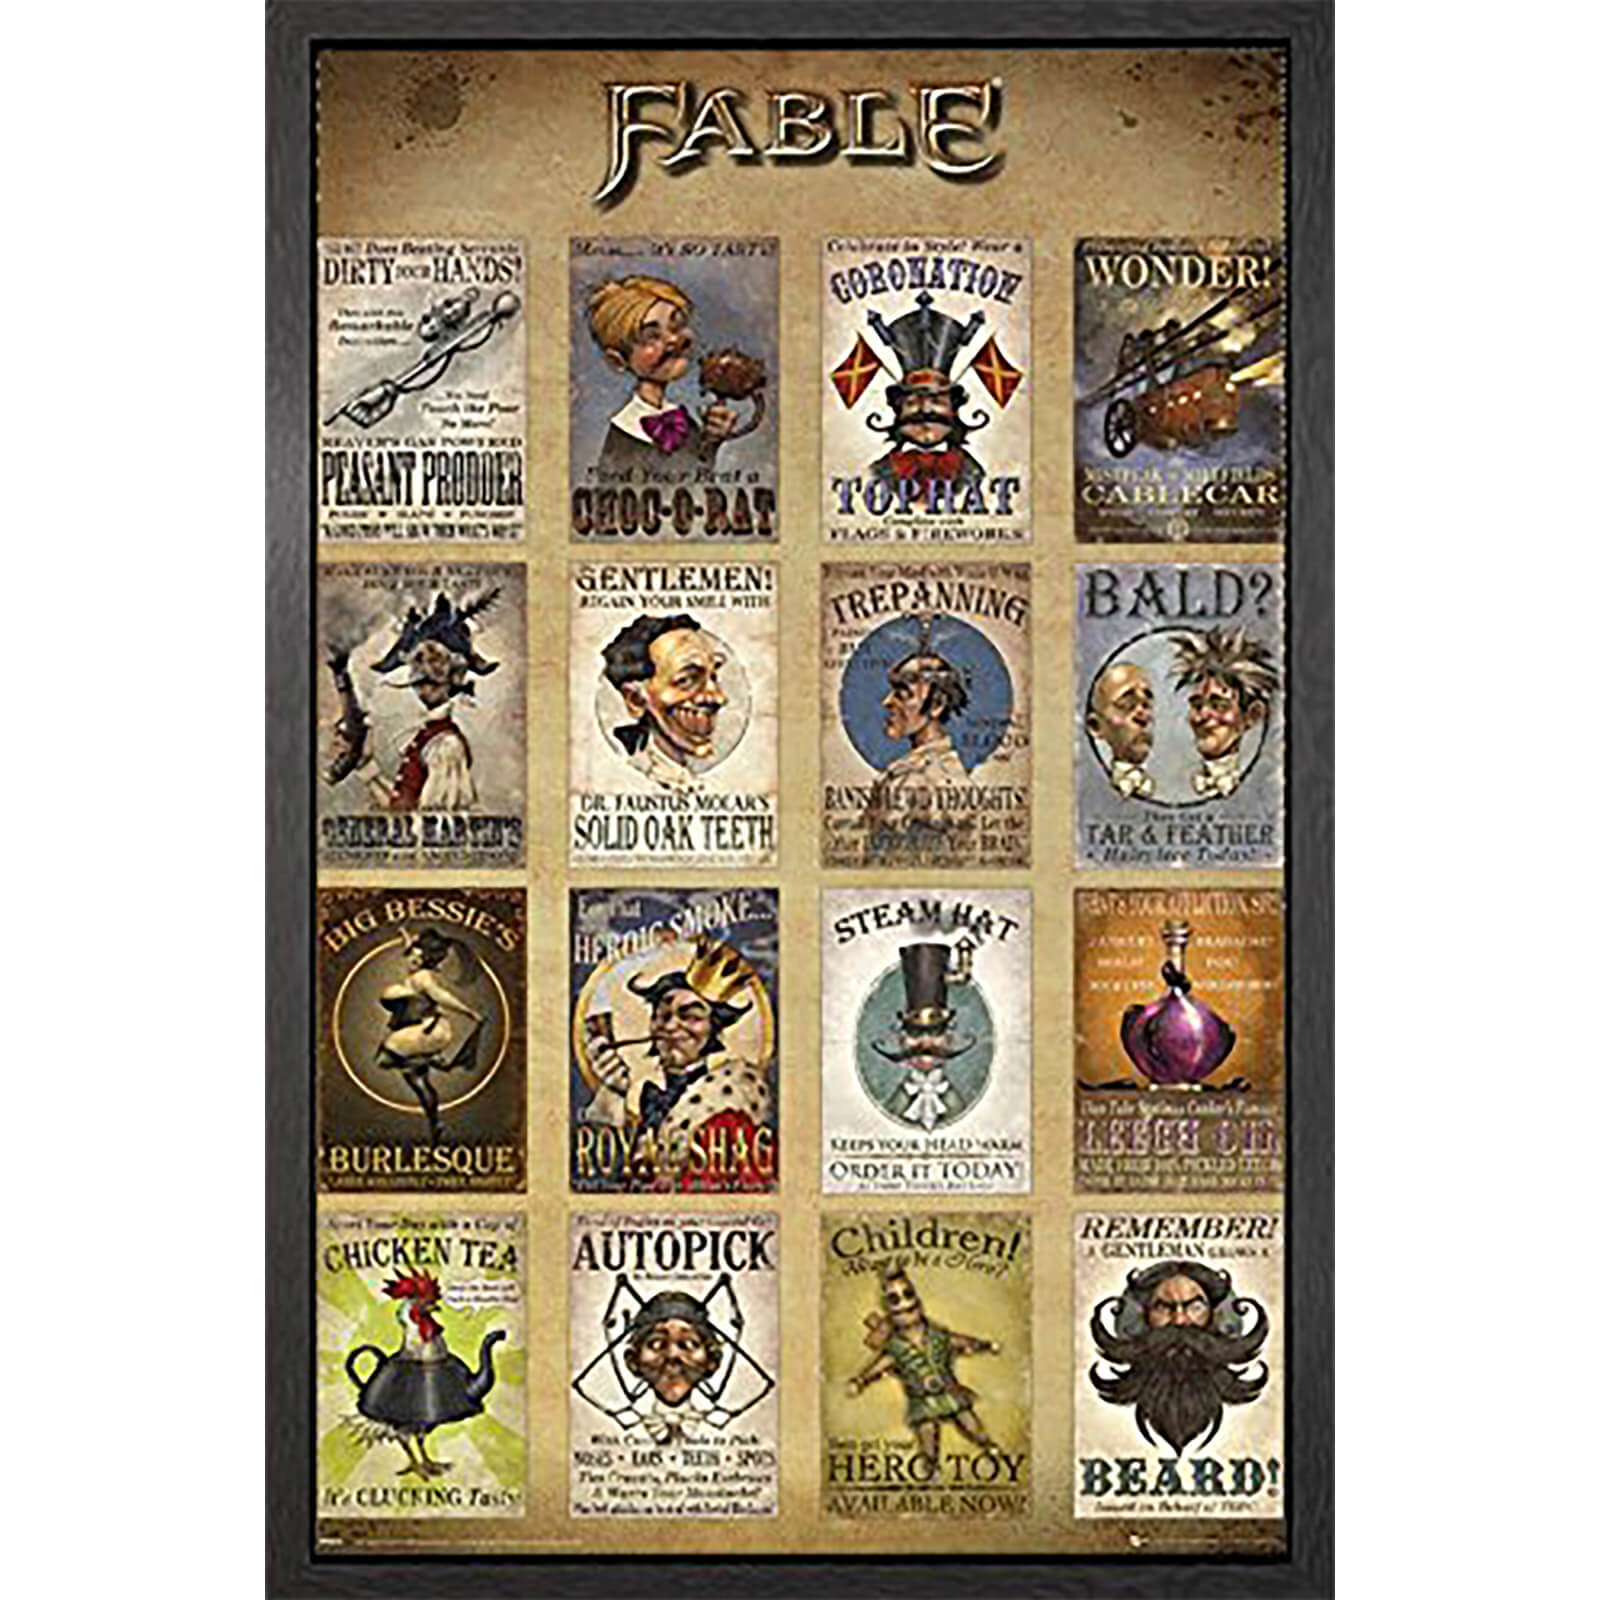 Fable Adverts - 61 x 91.5cm Framed Maxi Poster